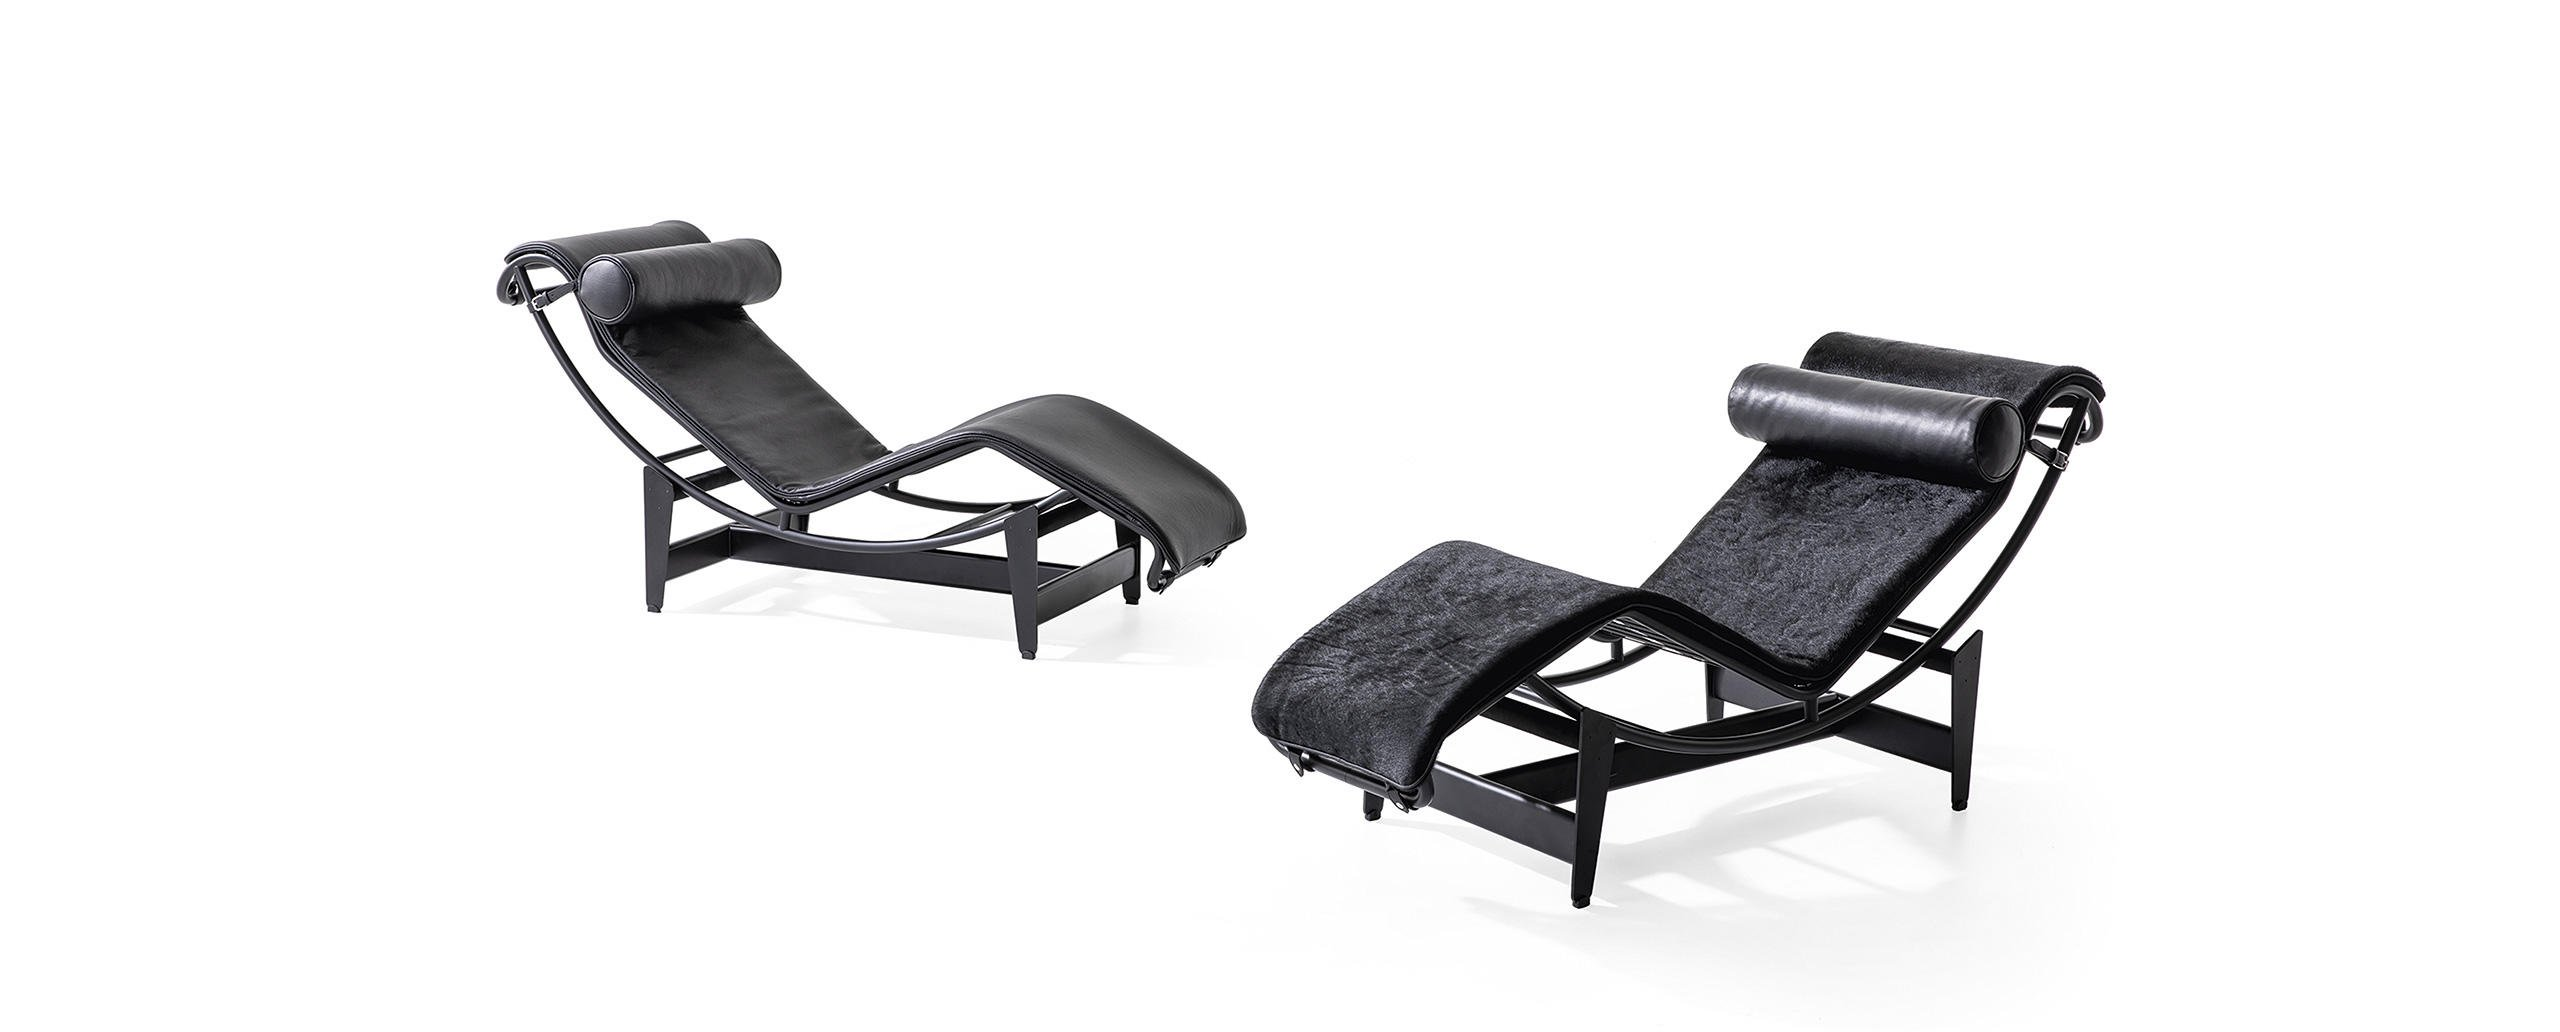 3_cassina_lc4_chaise-longue_le_corbusier_jeanneret_perriand_all_black